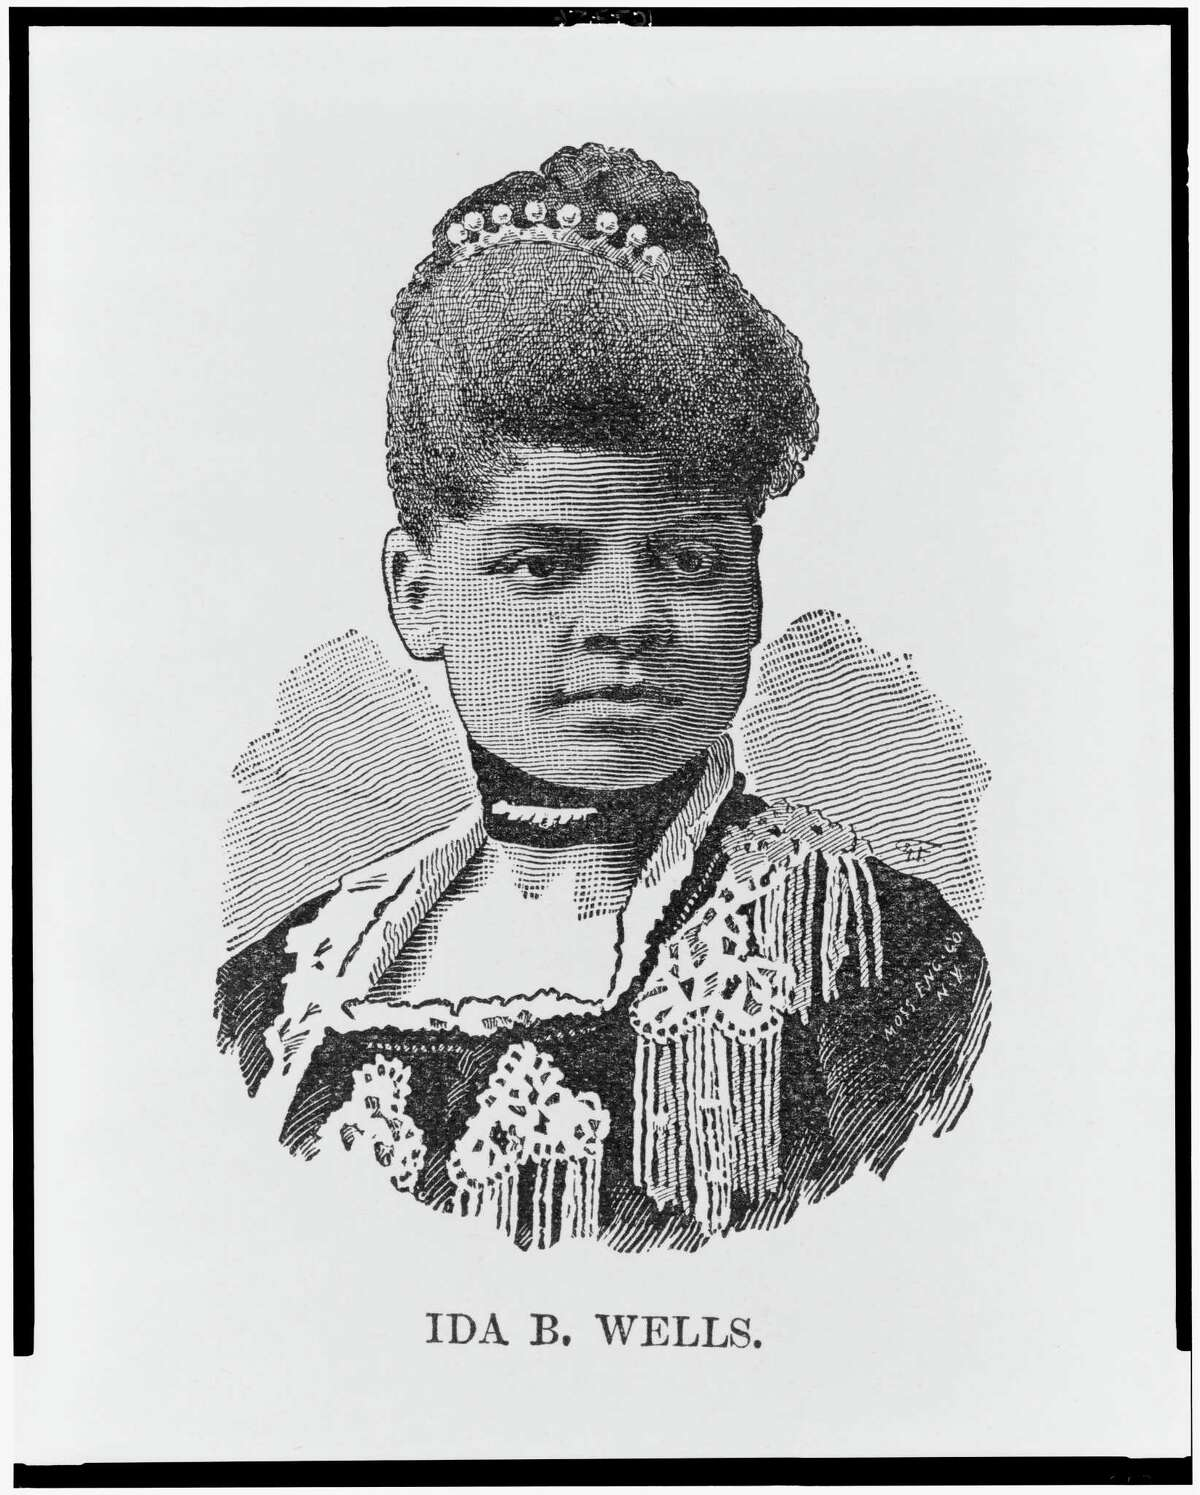 Ida B. Wells. Illustration in: The Afro-American press and its editors, by I. Garland Penn., 1891.